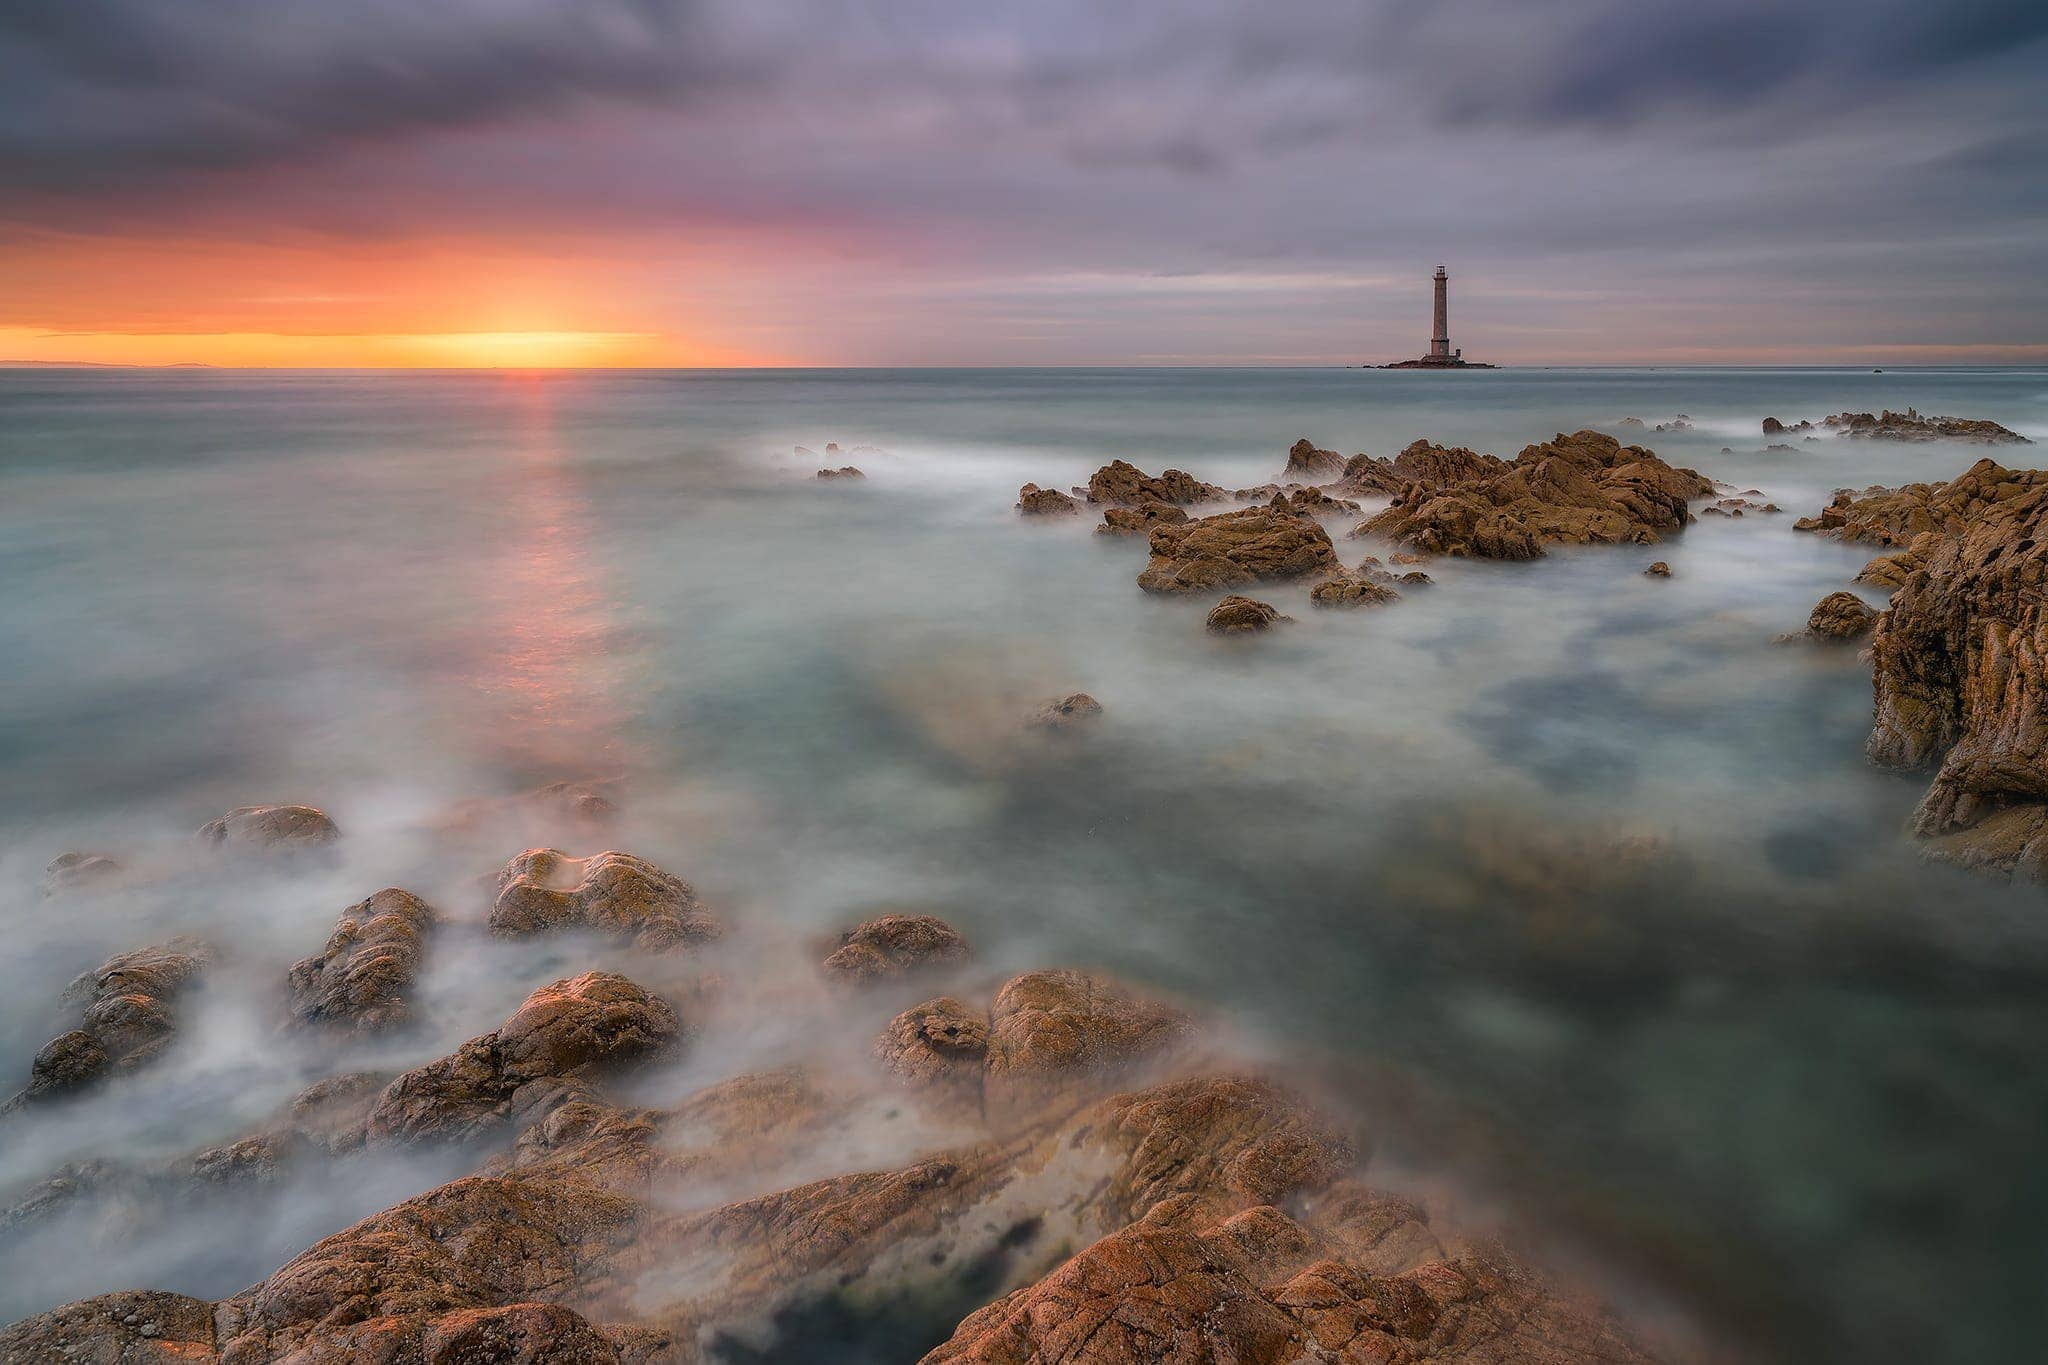 Francesco Gola Seascape Landscape Photography Long Exposure Faro Phare Lighthouse Cap Hague Goury France Normandy Sunset V3